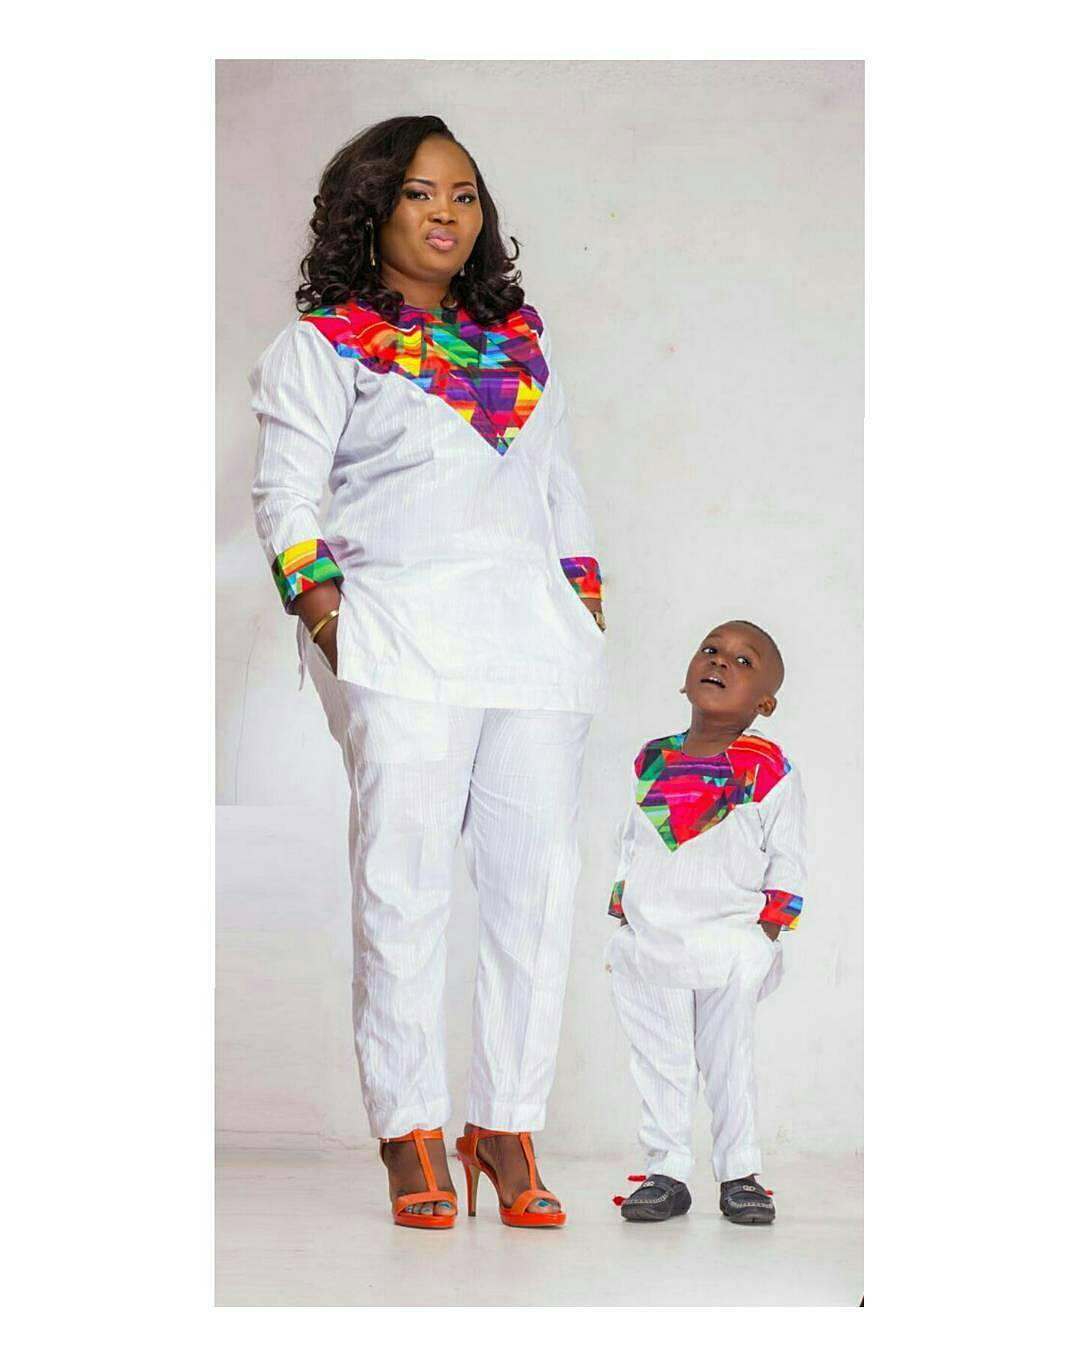 stylish mother and daugtherson outfits  a million styles